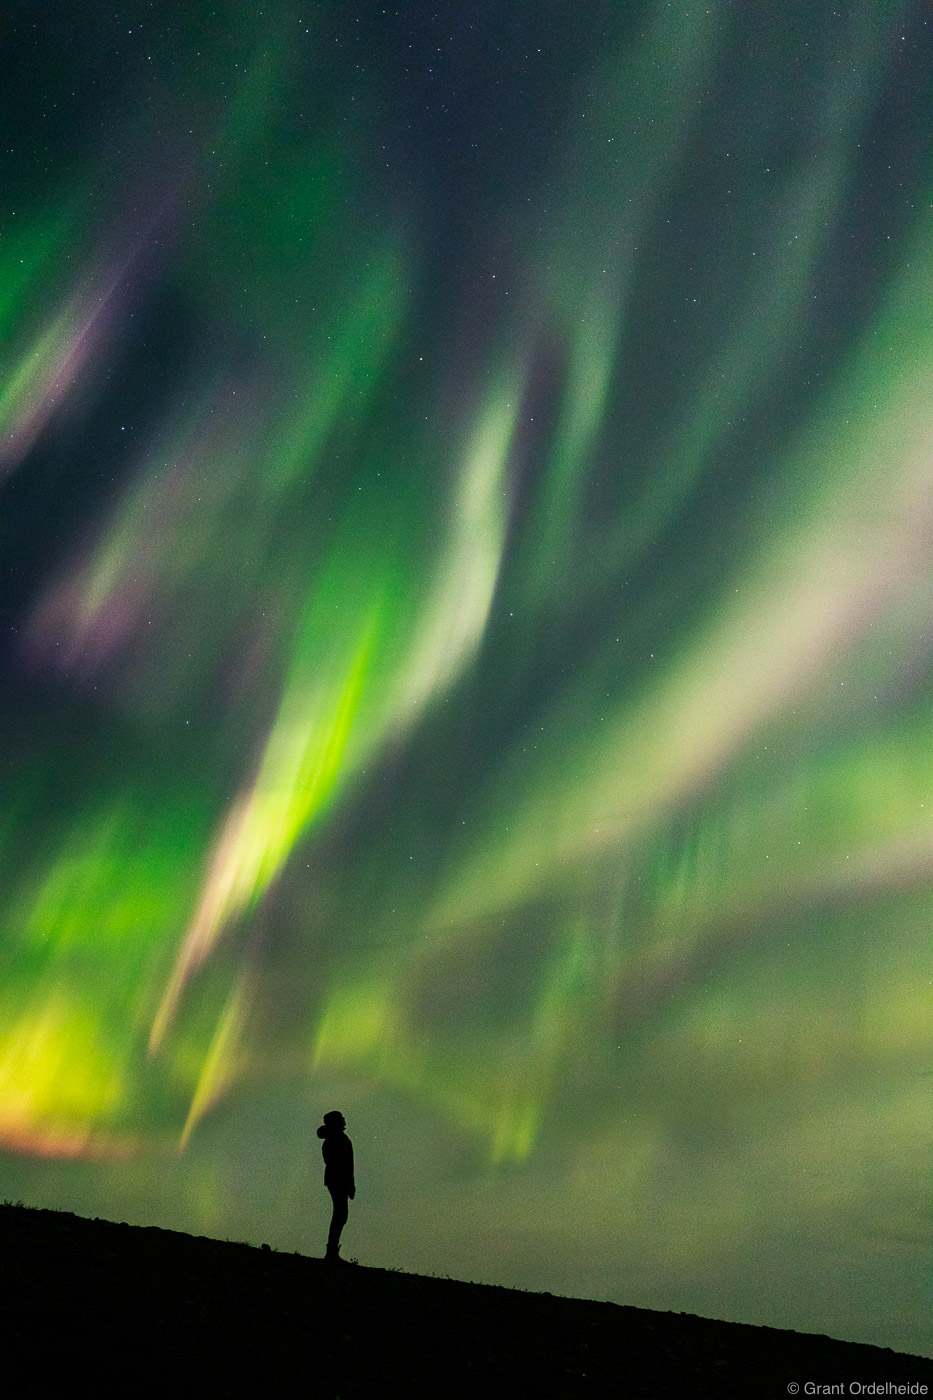 northern, sky, dawson city, yukon, spectacular, person, aurora, borealis, canada,, photo